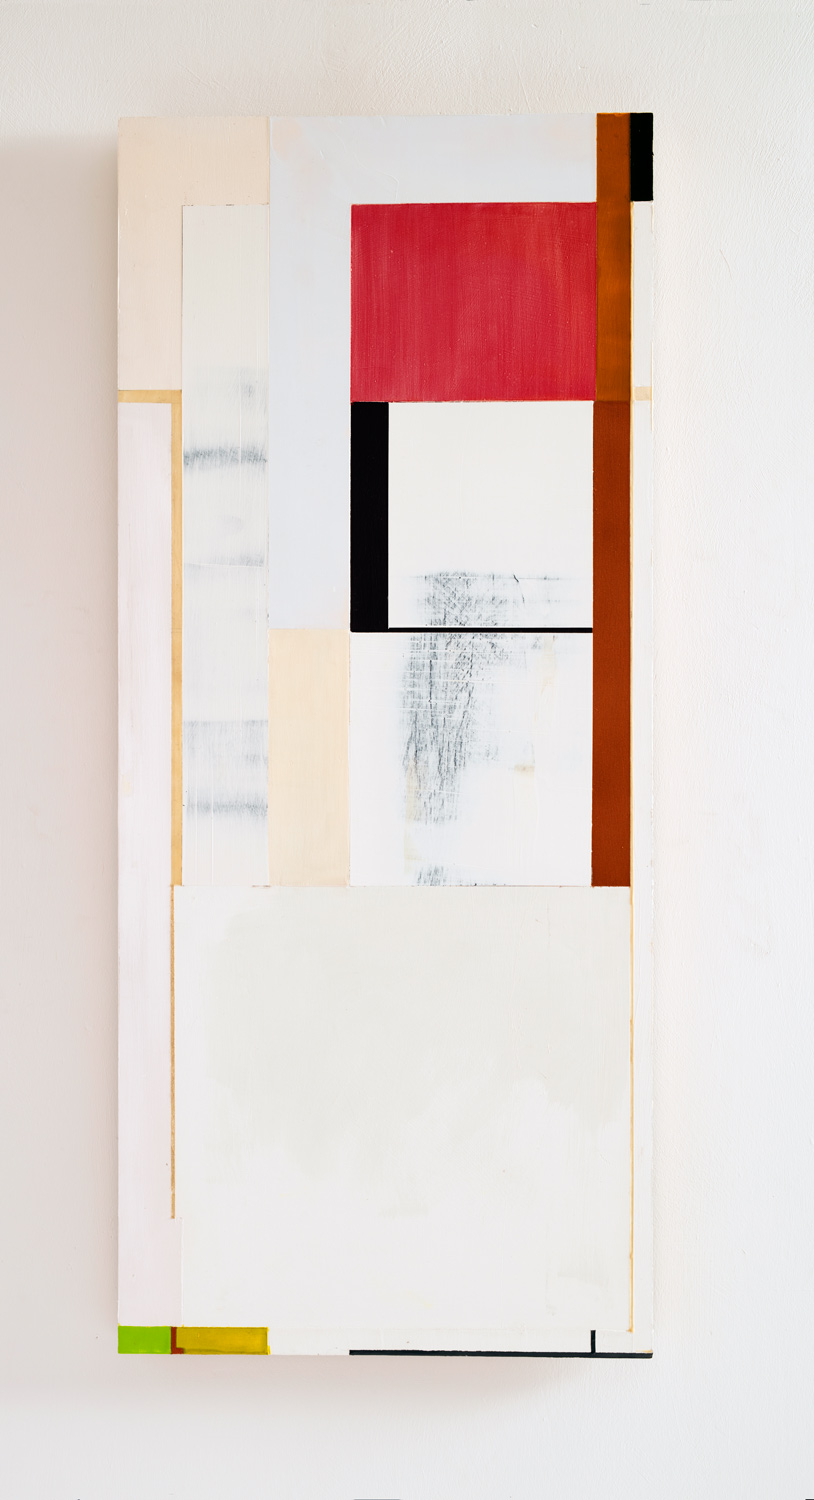 Joan Waltemath black and red is gold East 3 1,2,3,5,8…) 2013-16